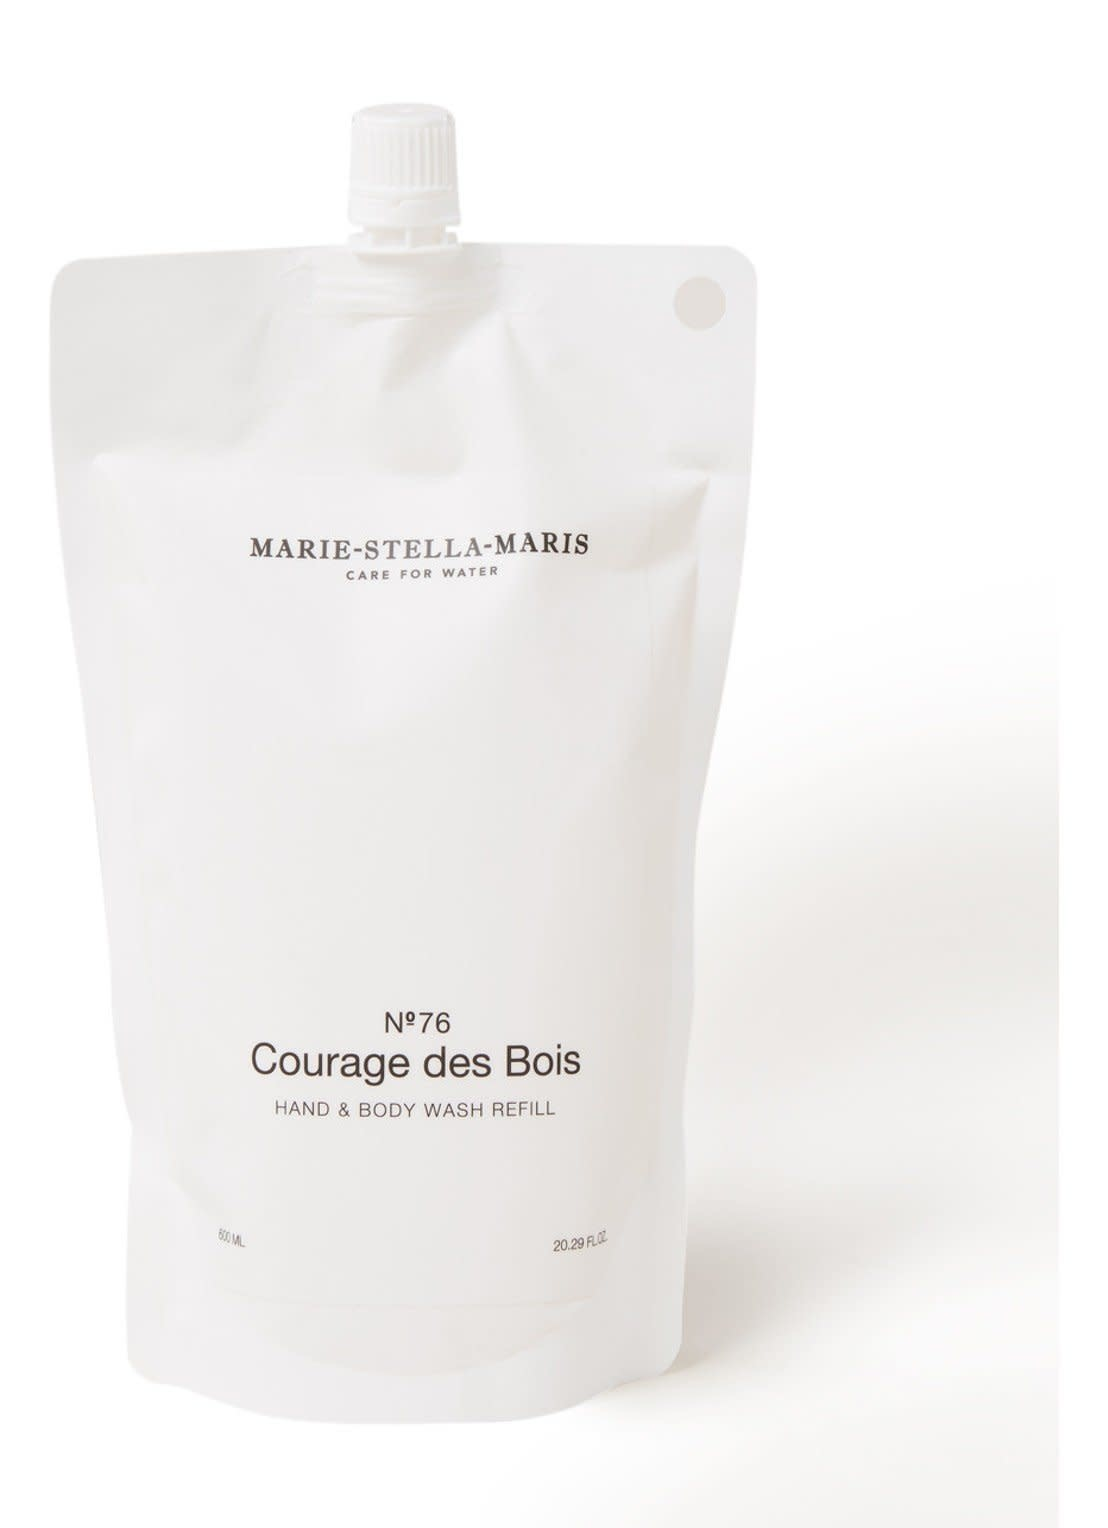 Hand & body wash Courages des Bois refill 600ML-1